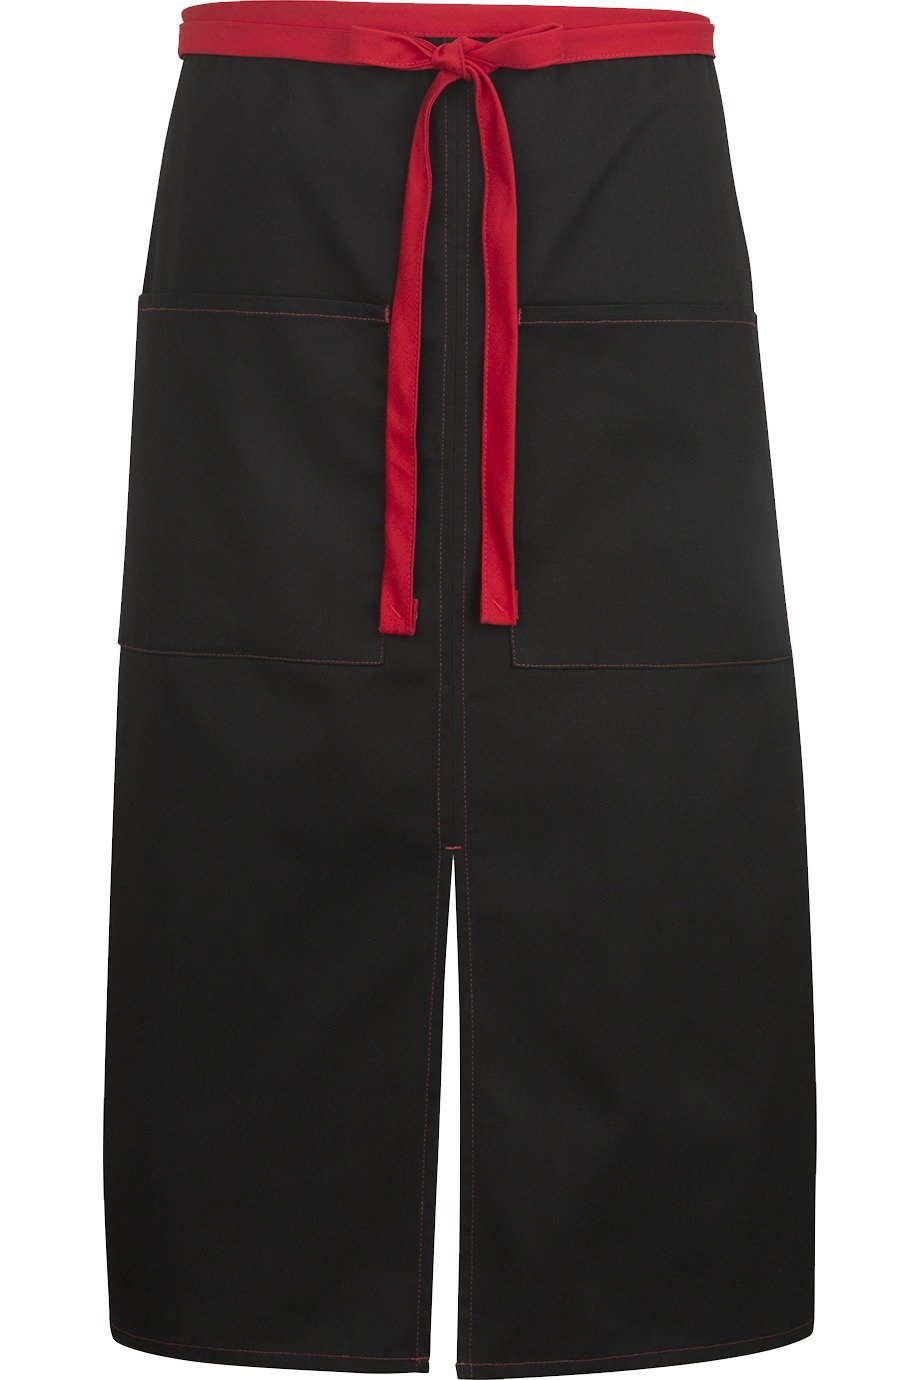 Black w/ Red Split Bistro Color Block Apron (2 Pockets)